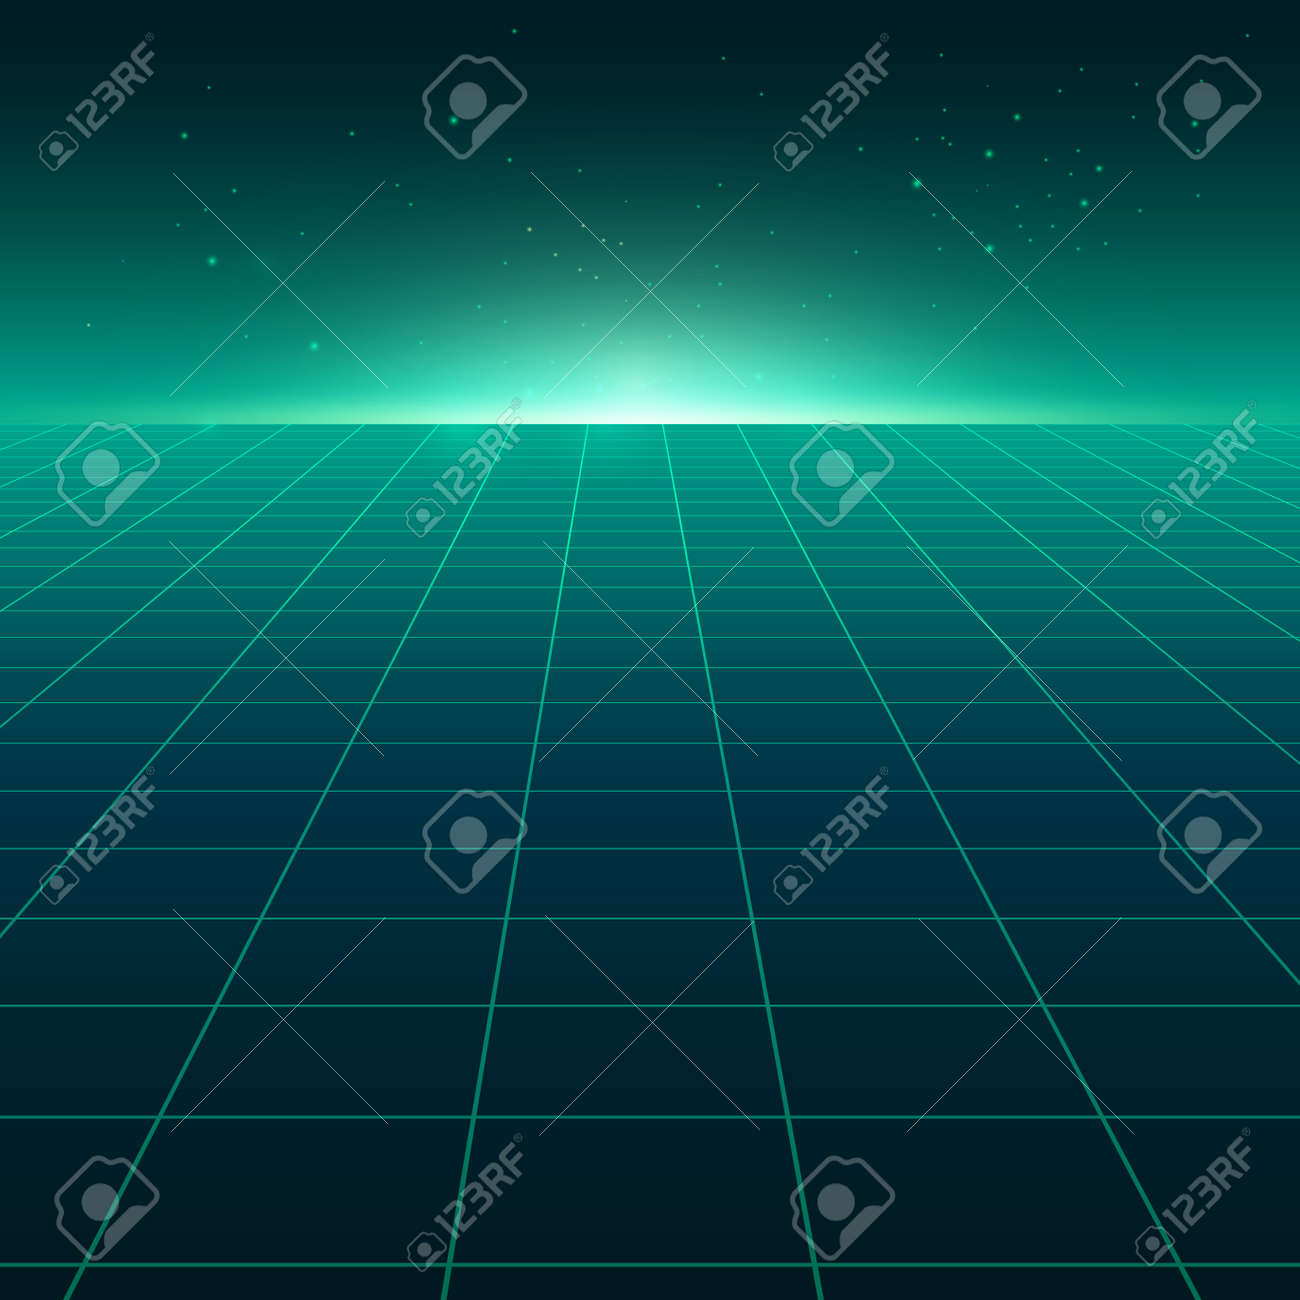 Abstract perspective green grid. Retro futuristic neon line on dark background, 80s design perspective distorted plane landscape composed of crossed neon lights and laser beams. Vector illustration - 154566257